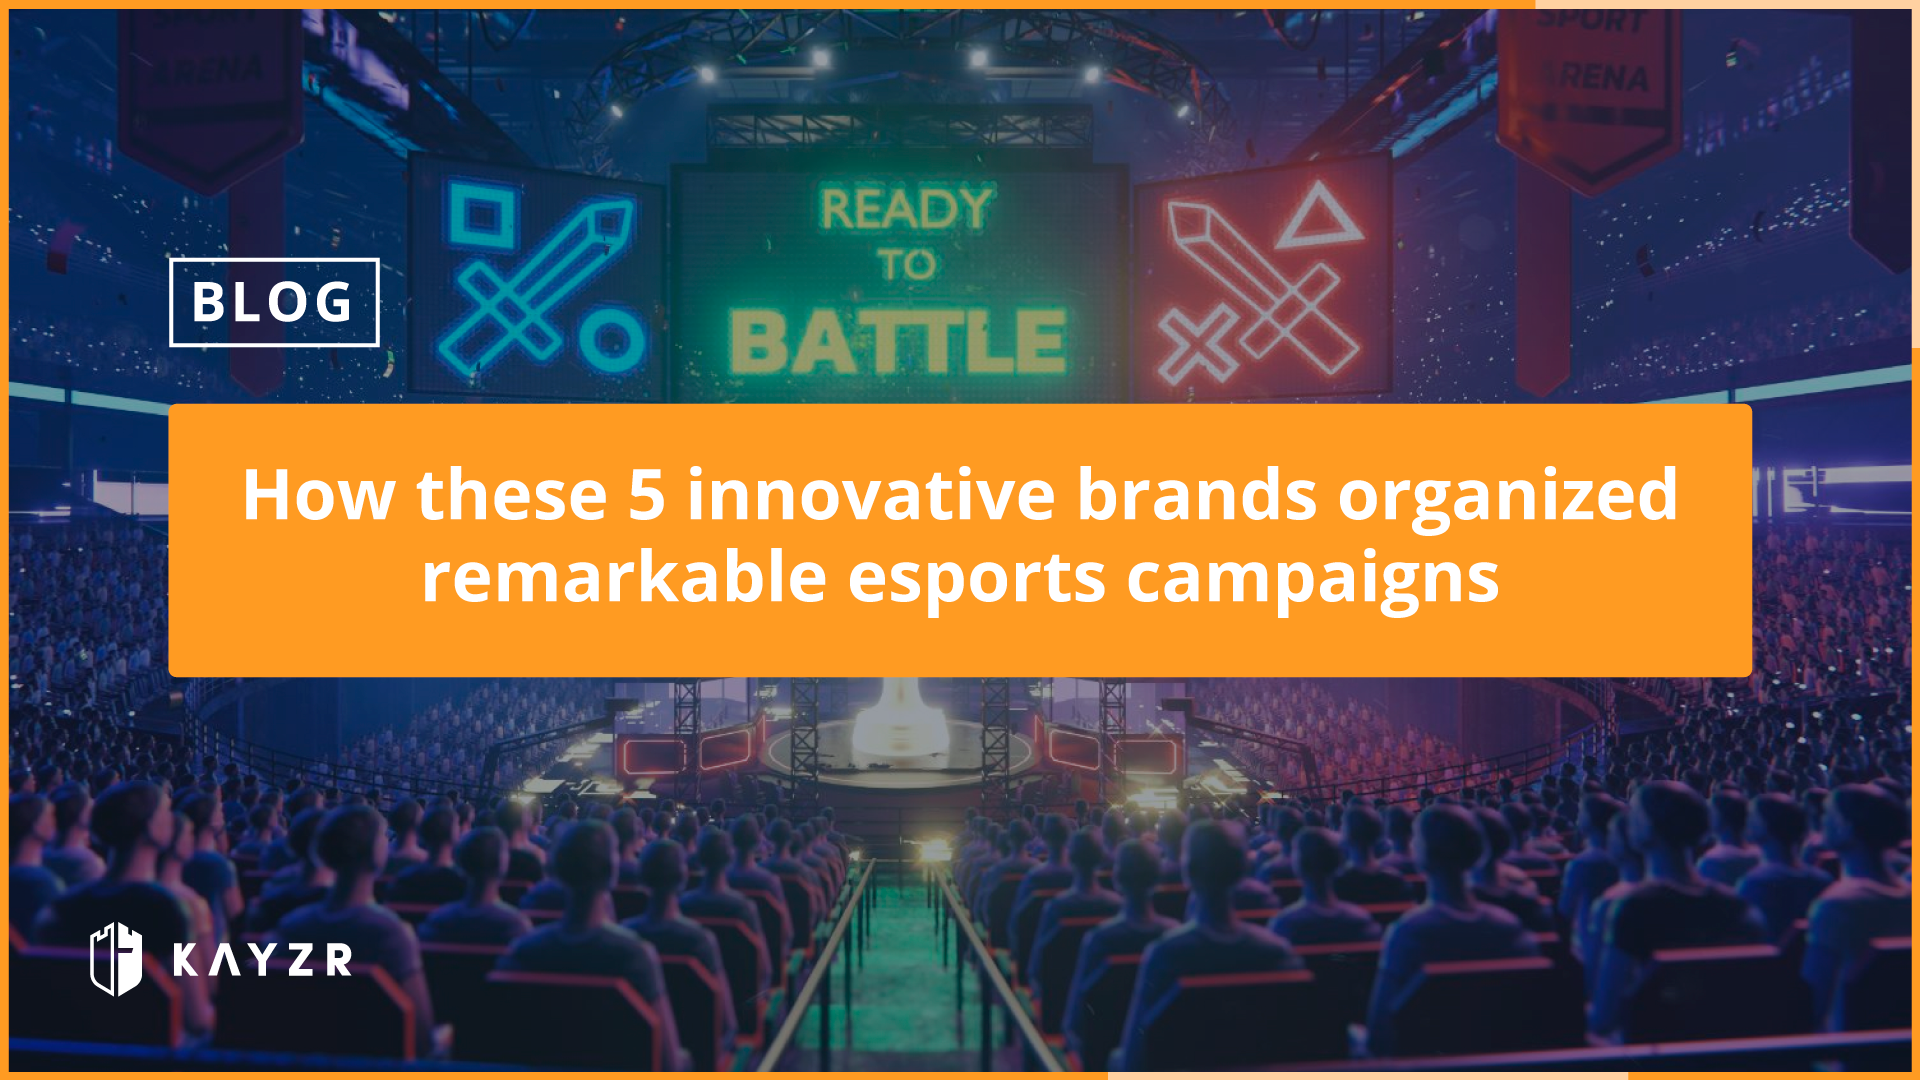 How these 5 innovative brands organized remarkable esports campaigns